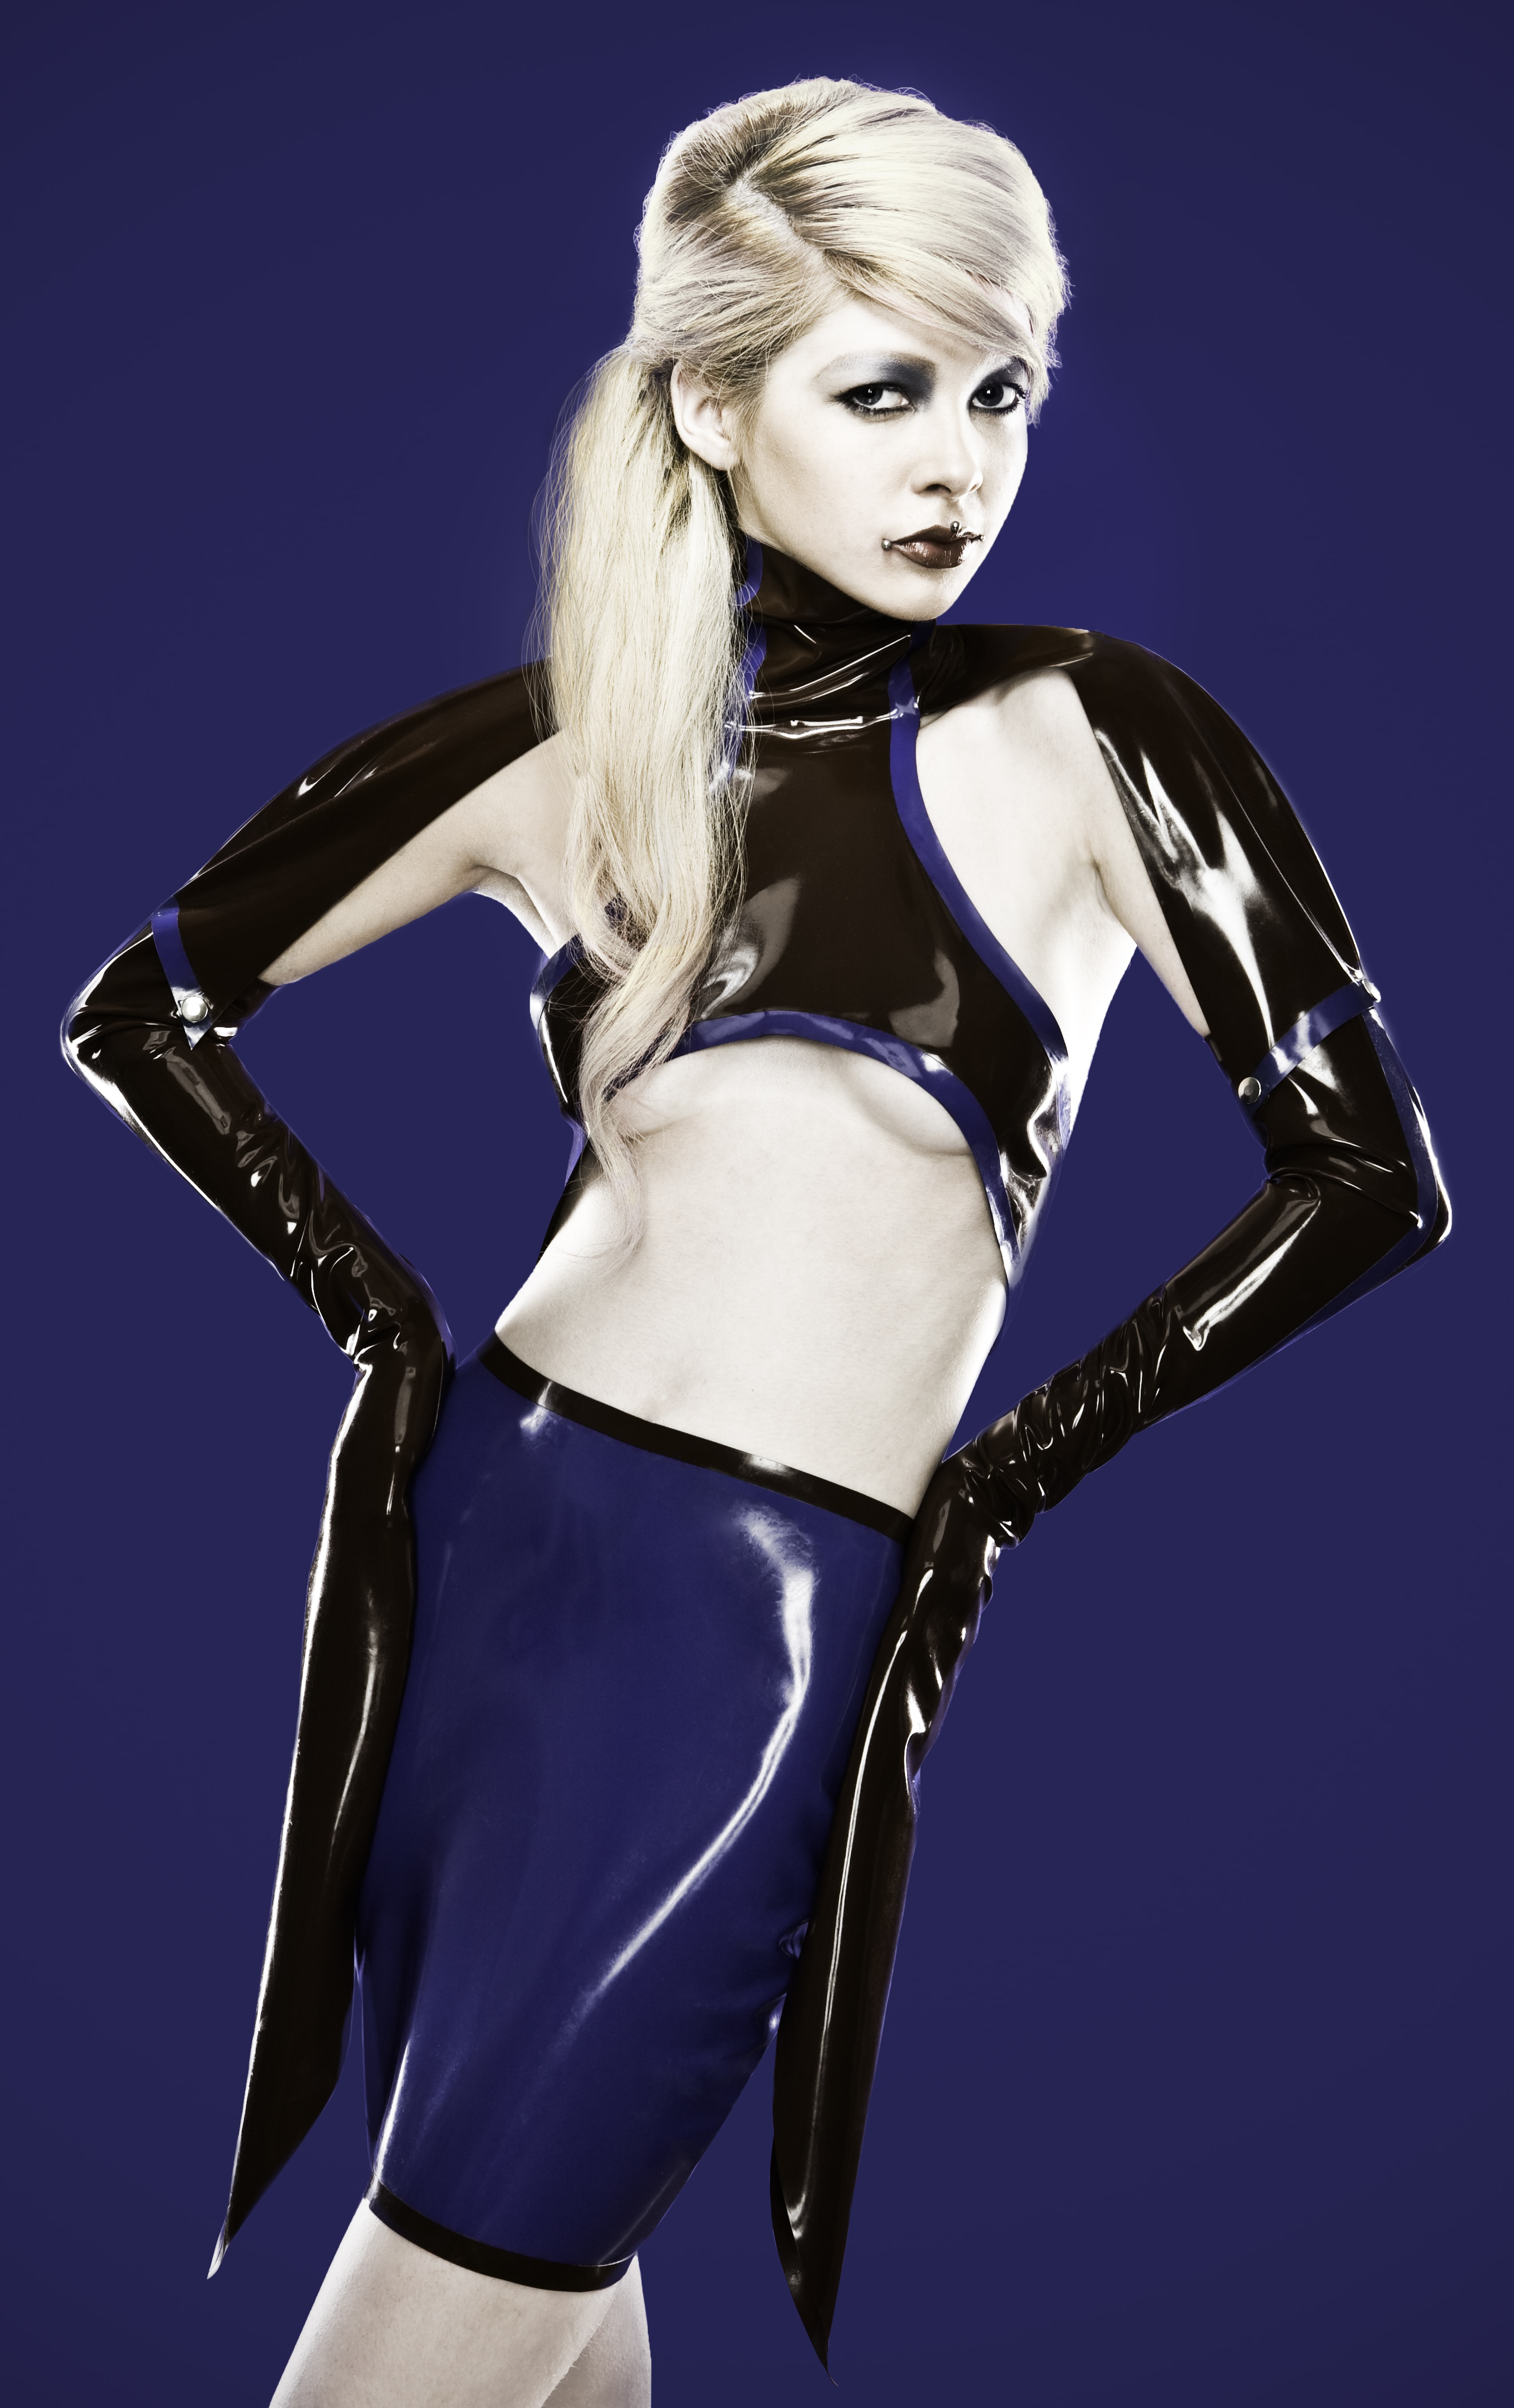 woman wearing black leather top and blue skirt